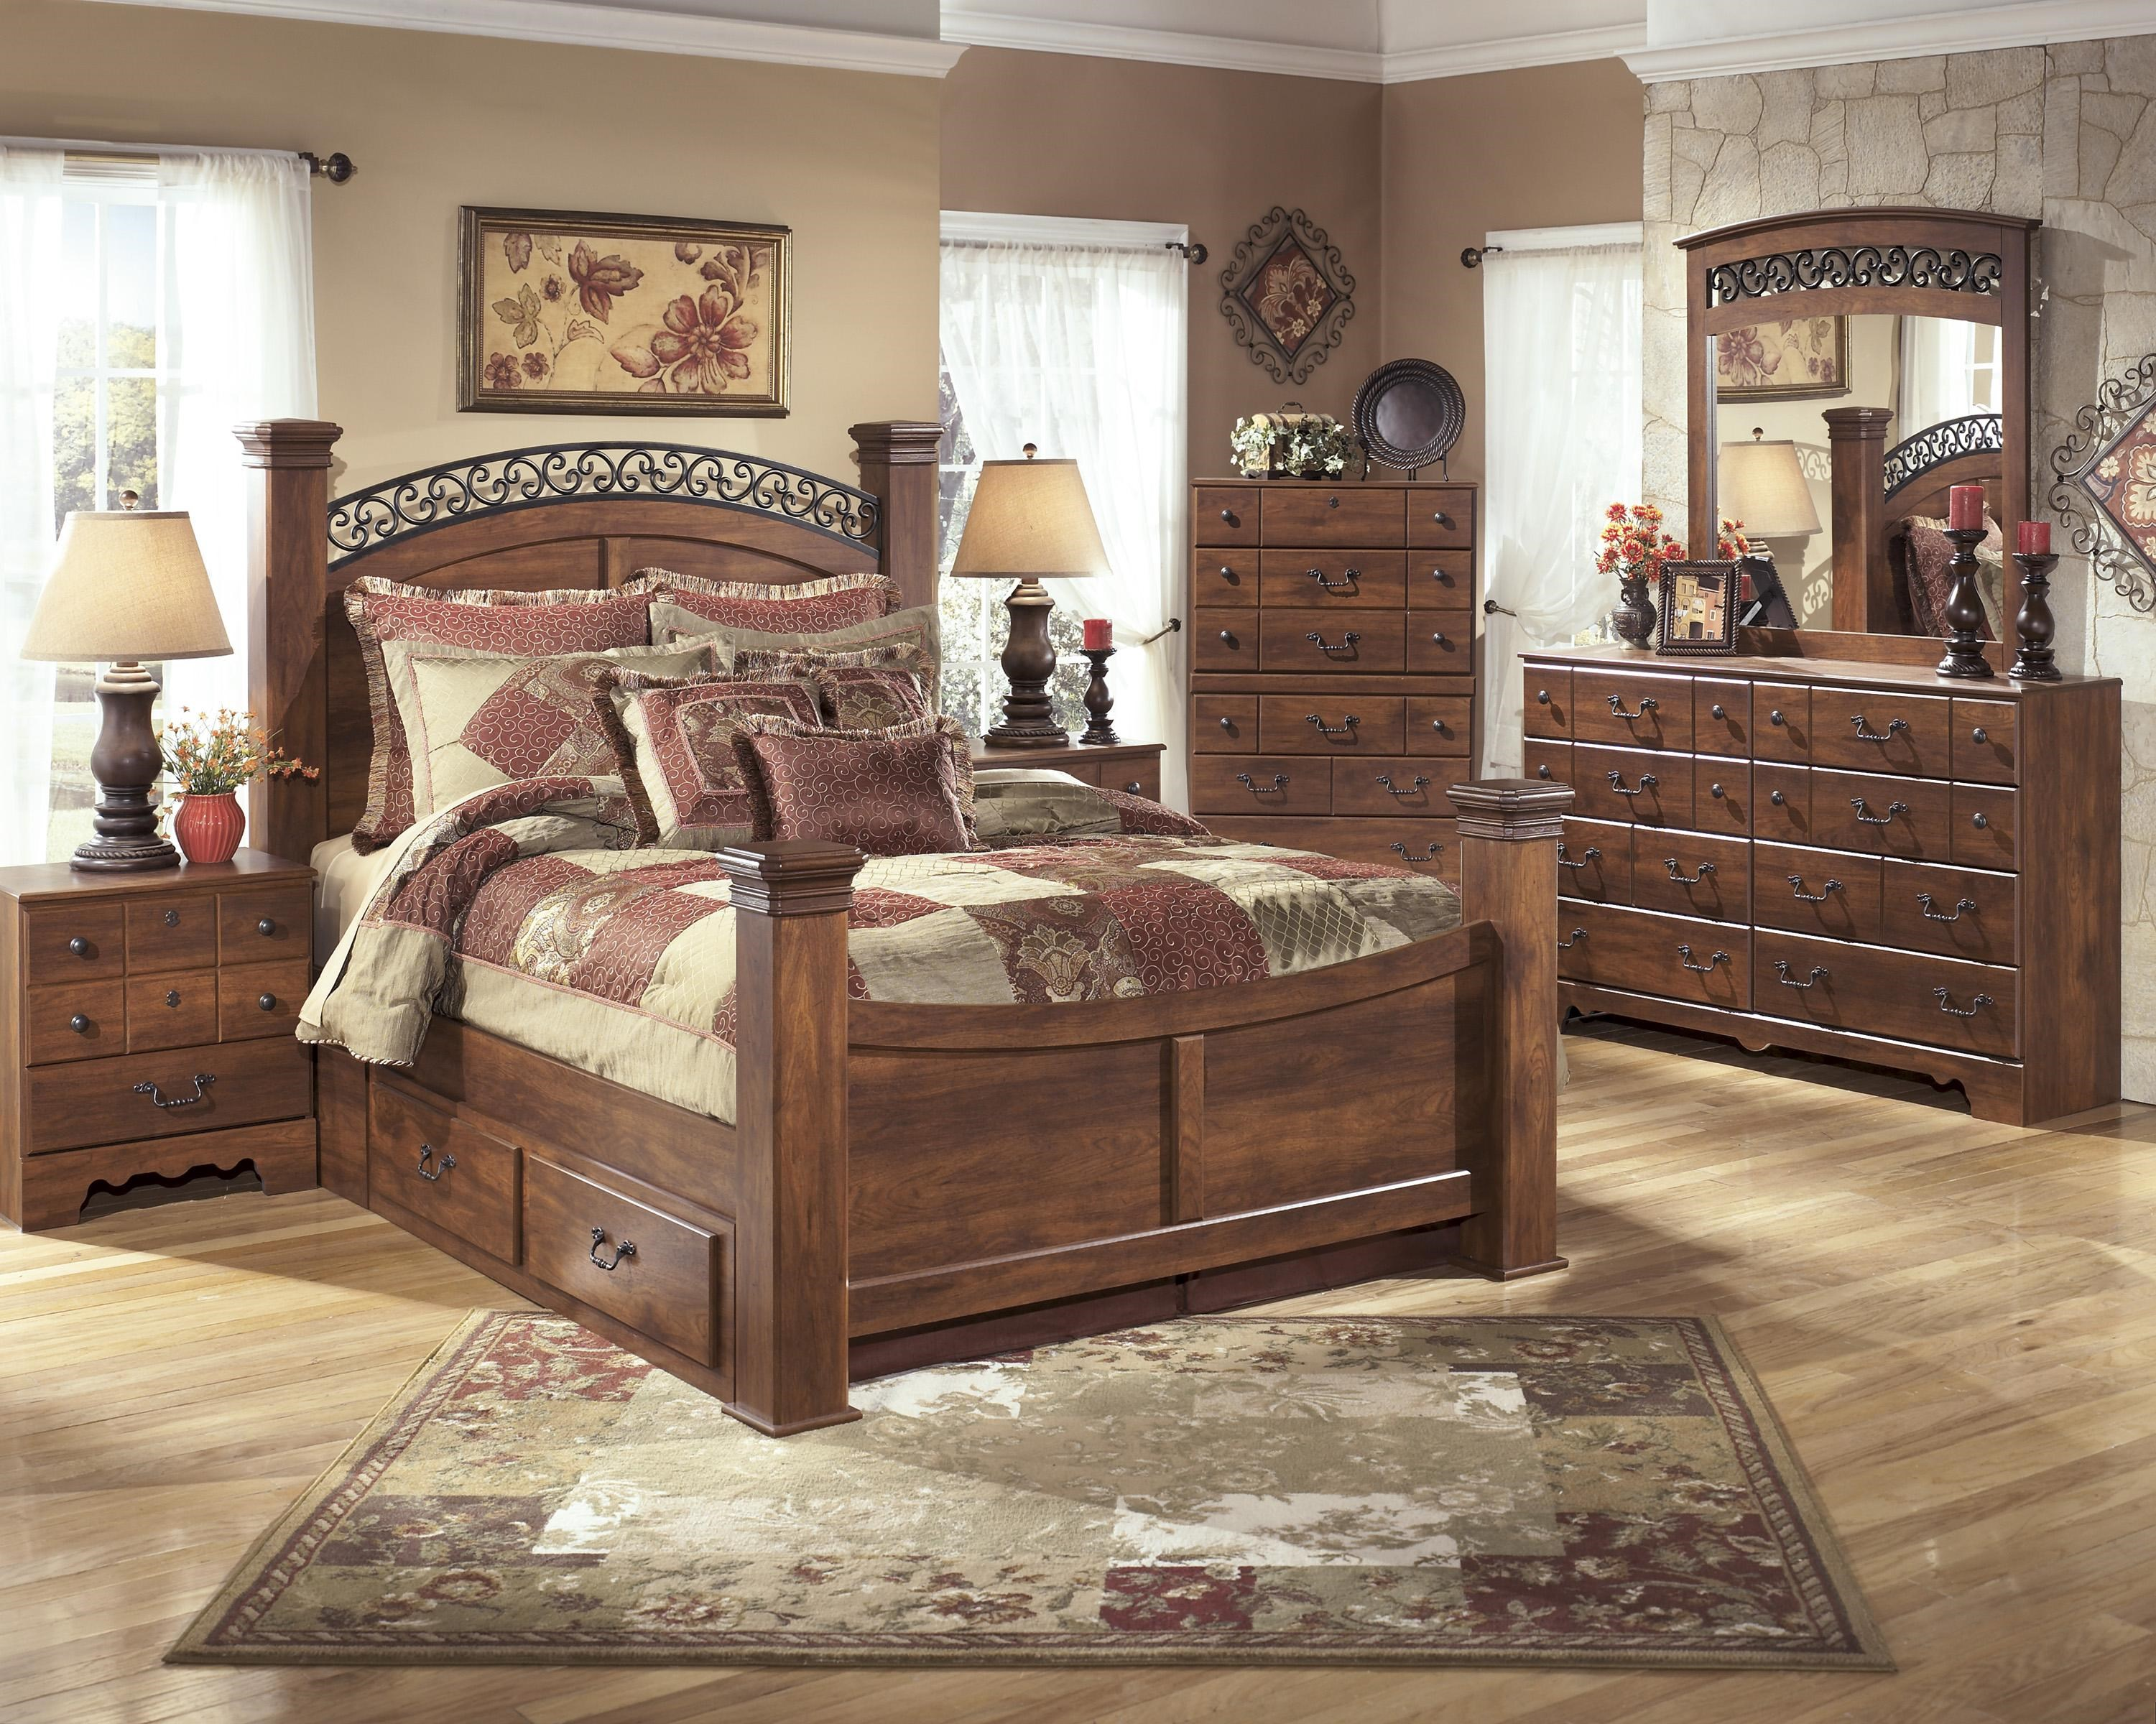 Signature Design by Ashley Furniture Timberline King